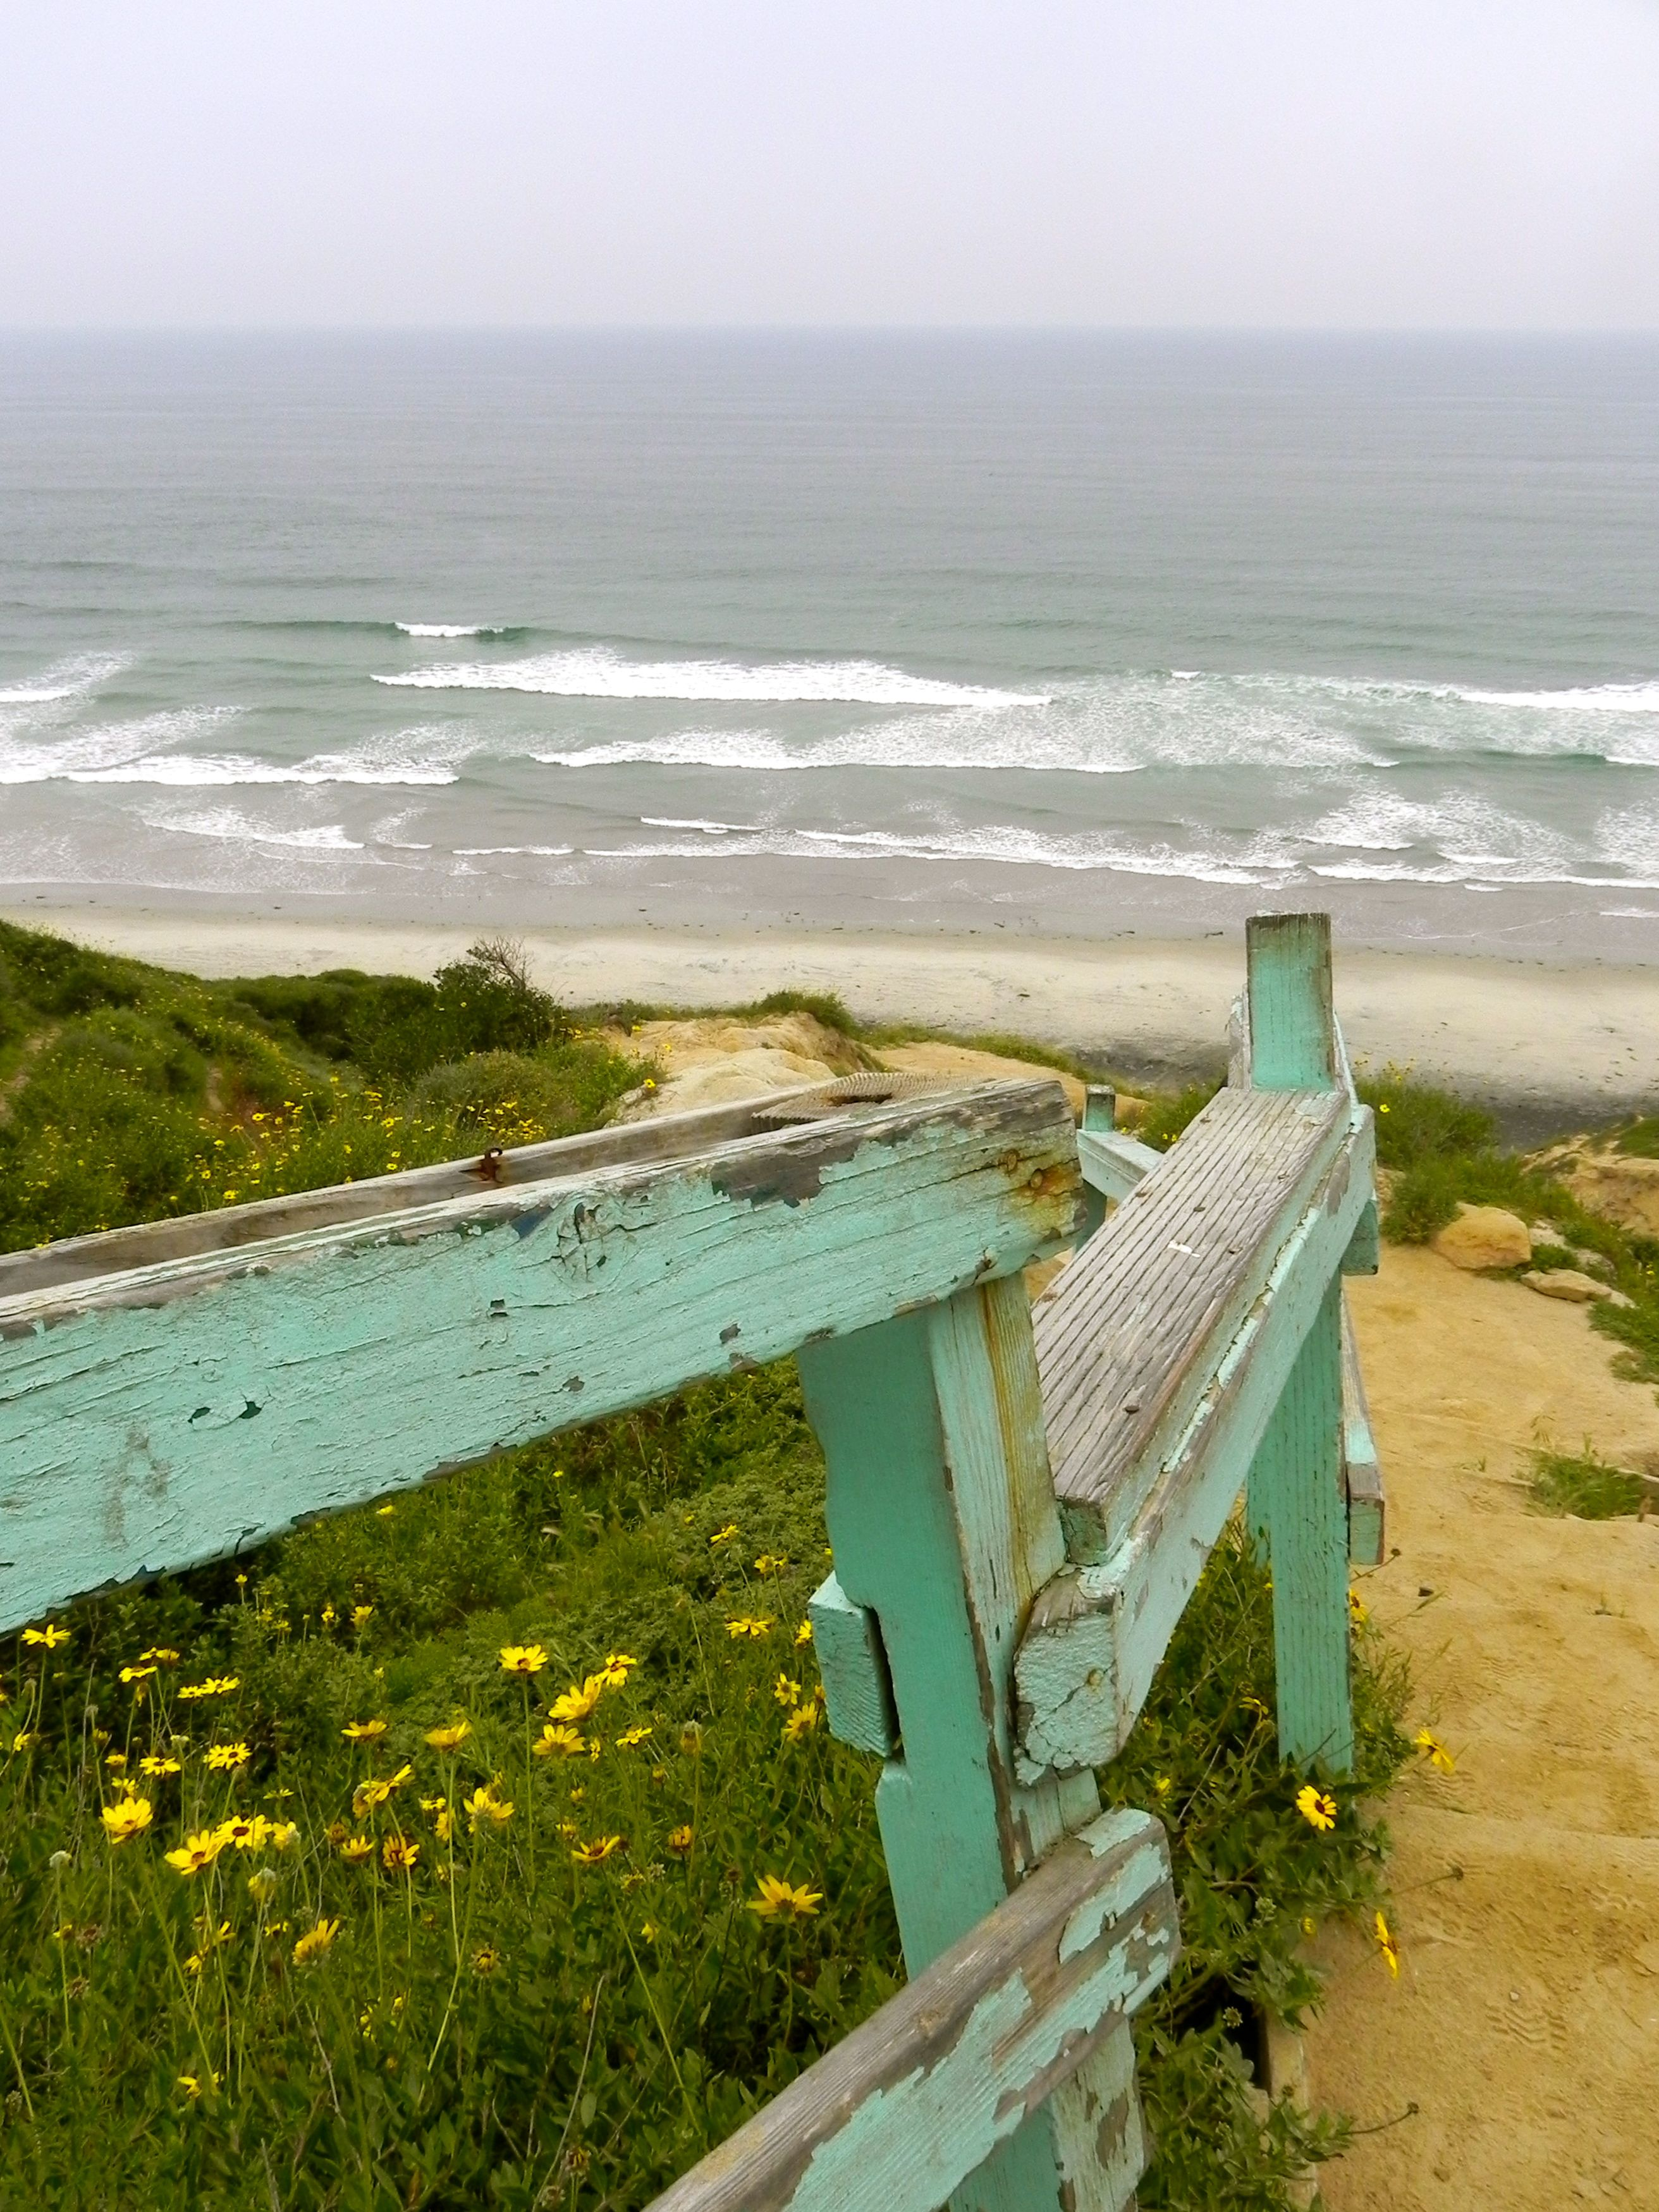 Down to Black's Beach at Torrey Pines